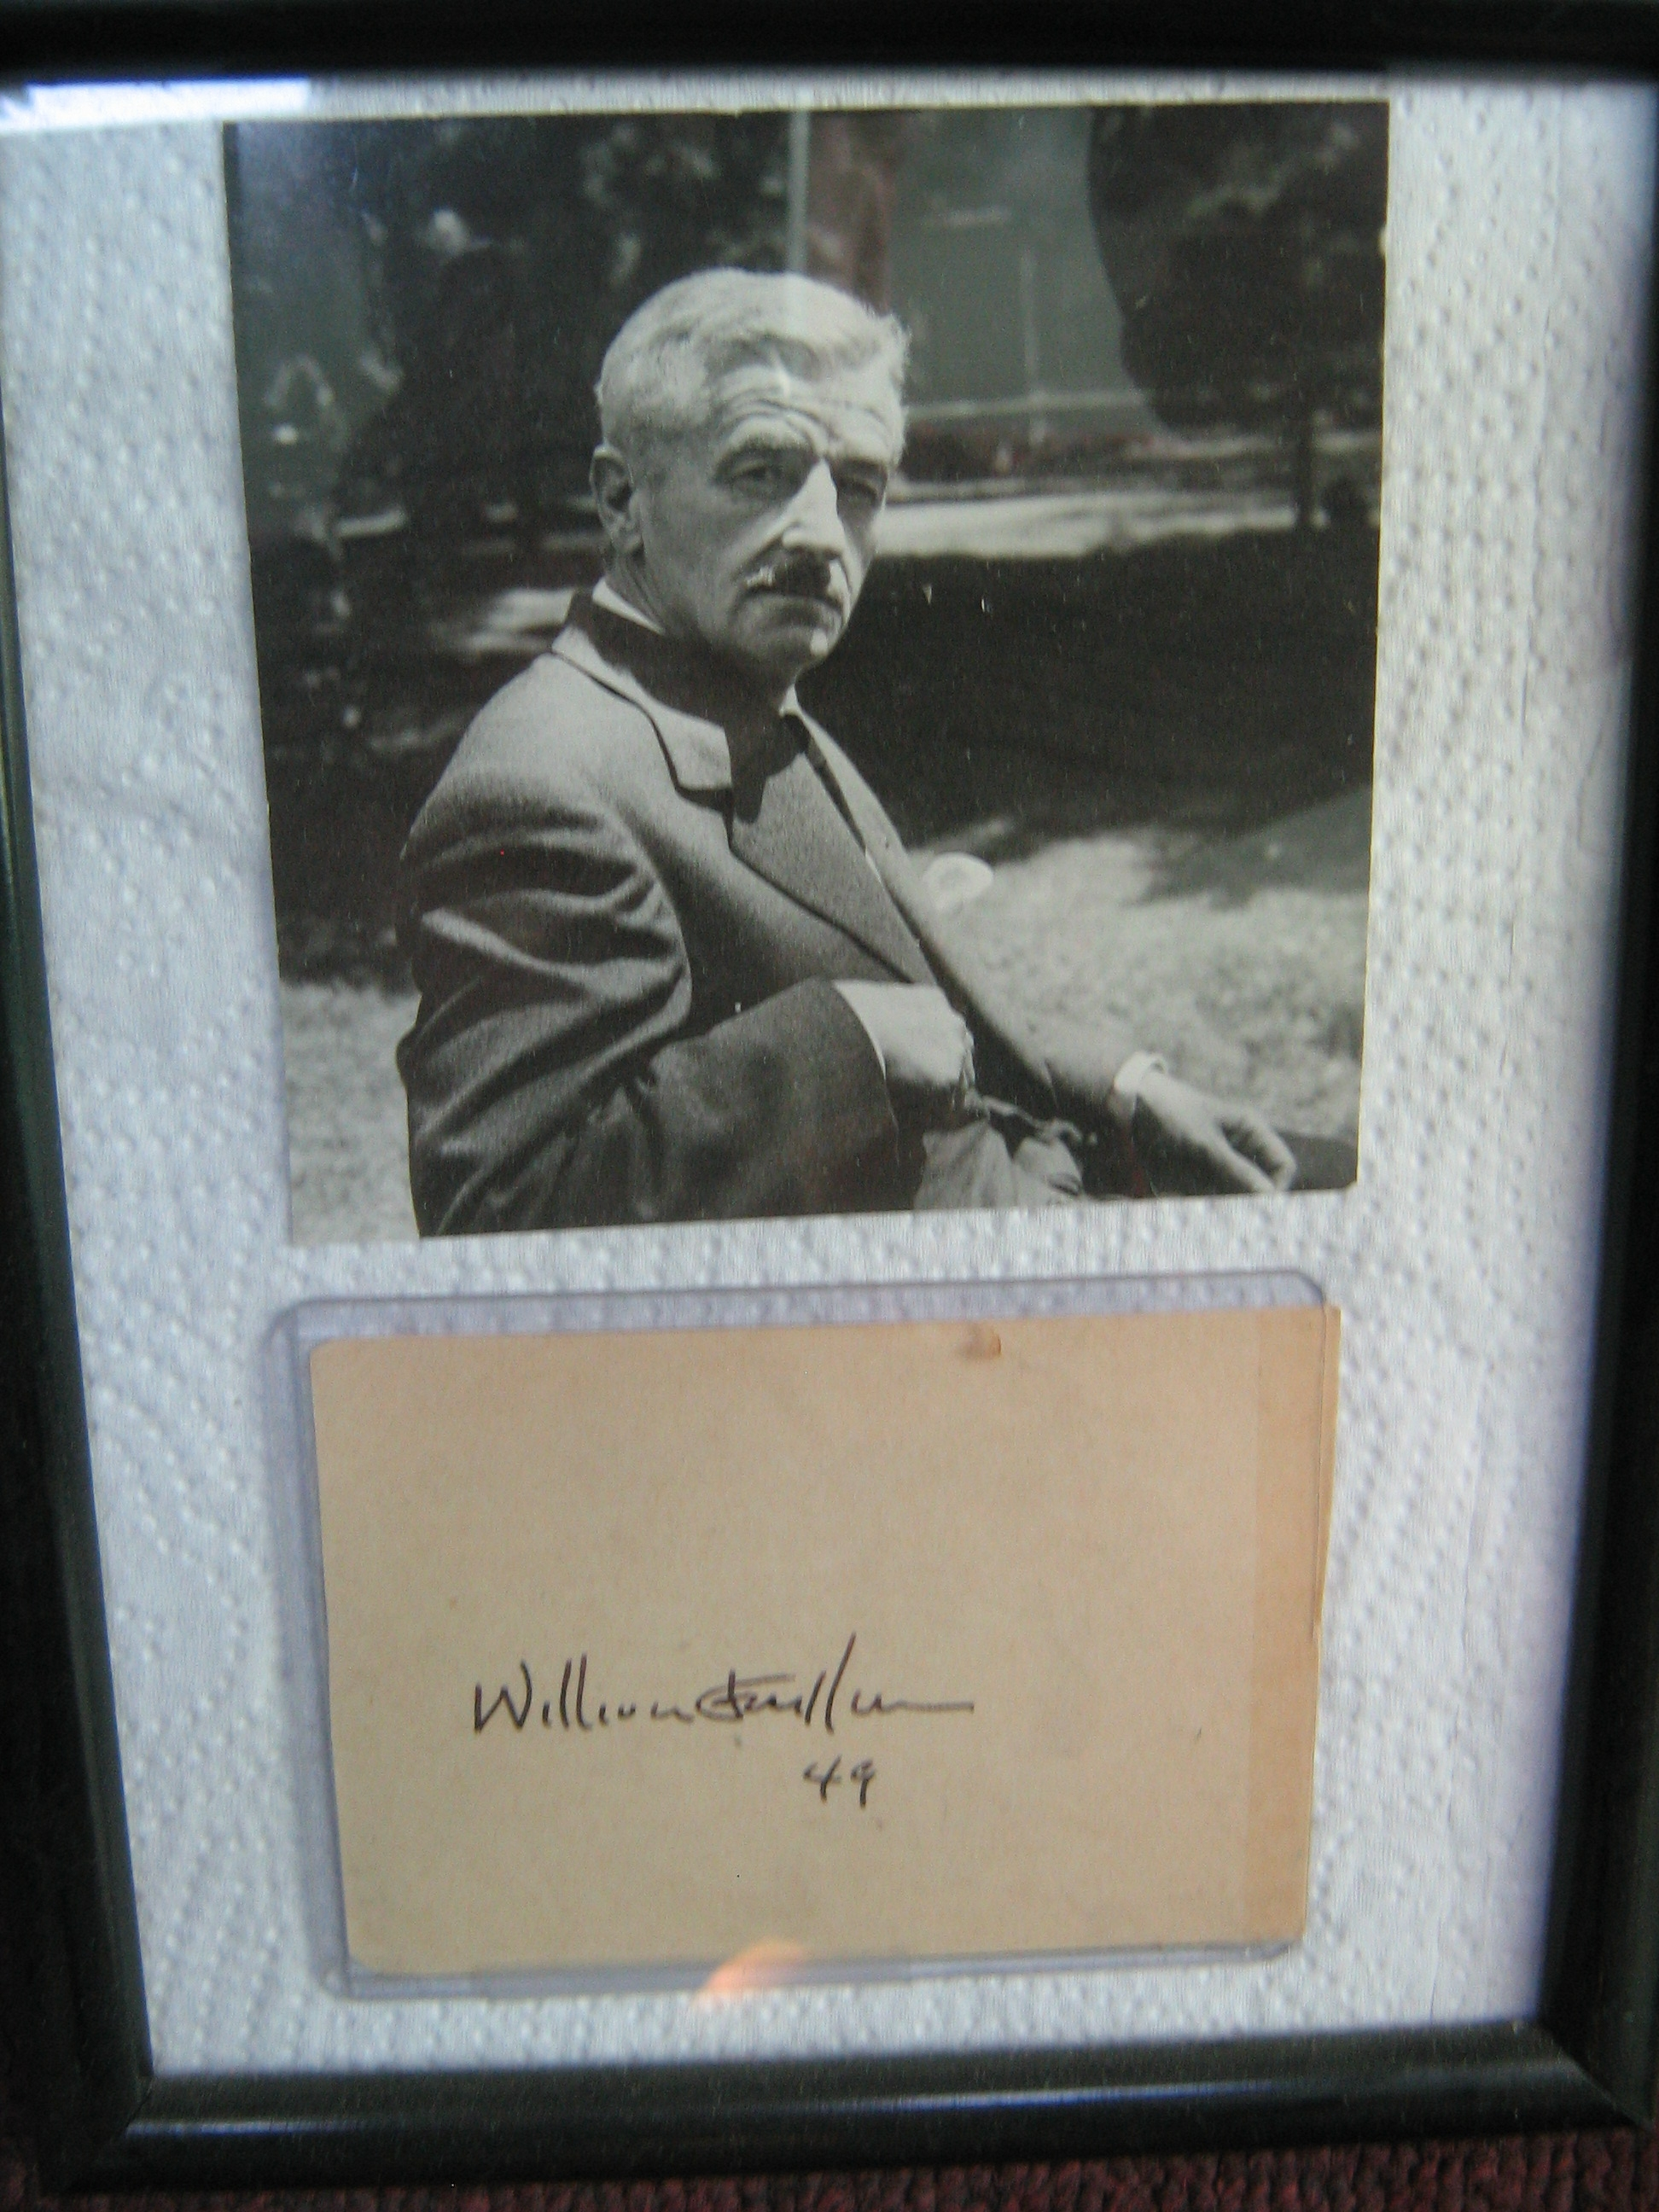 williamfaulkner.jpg